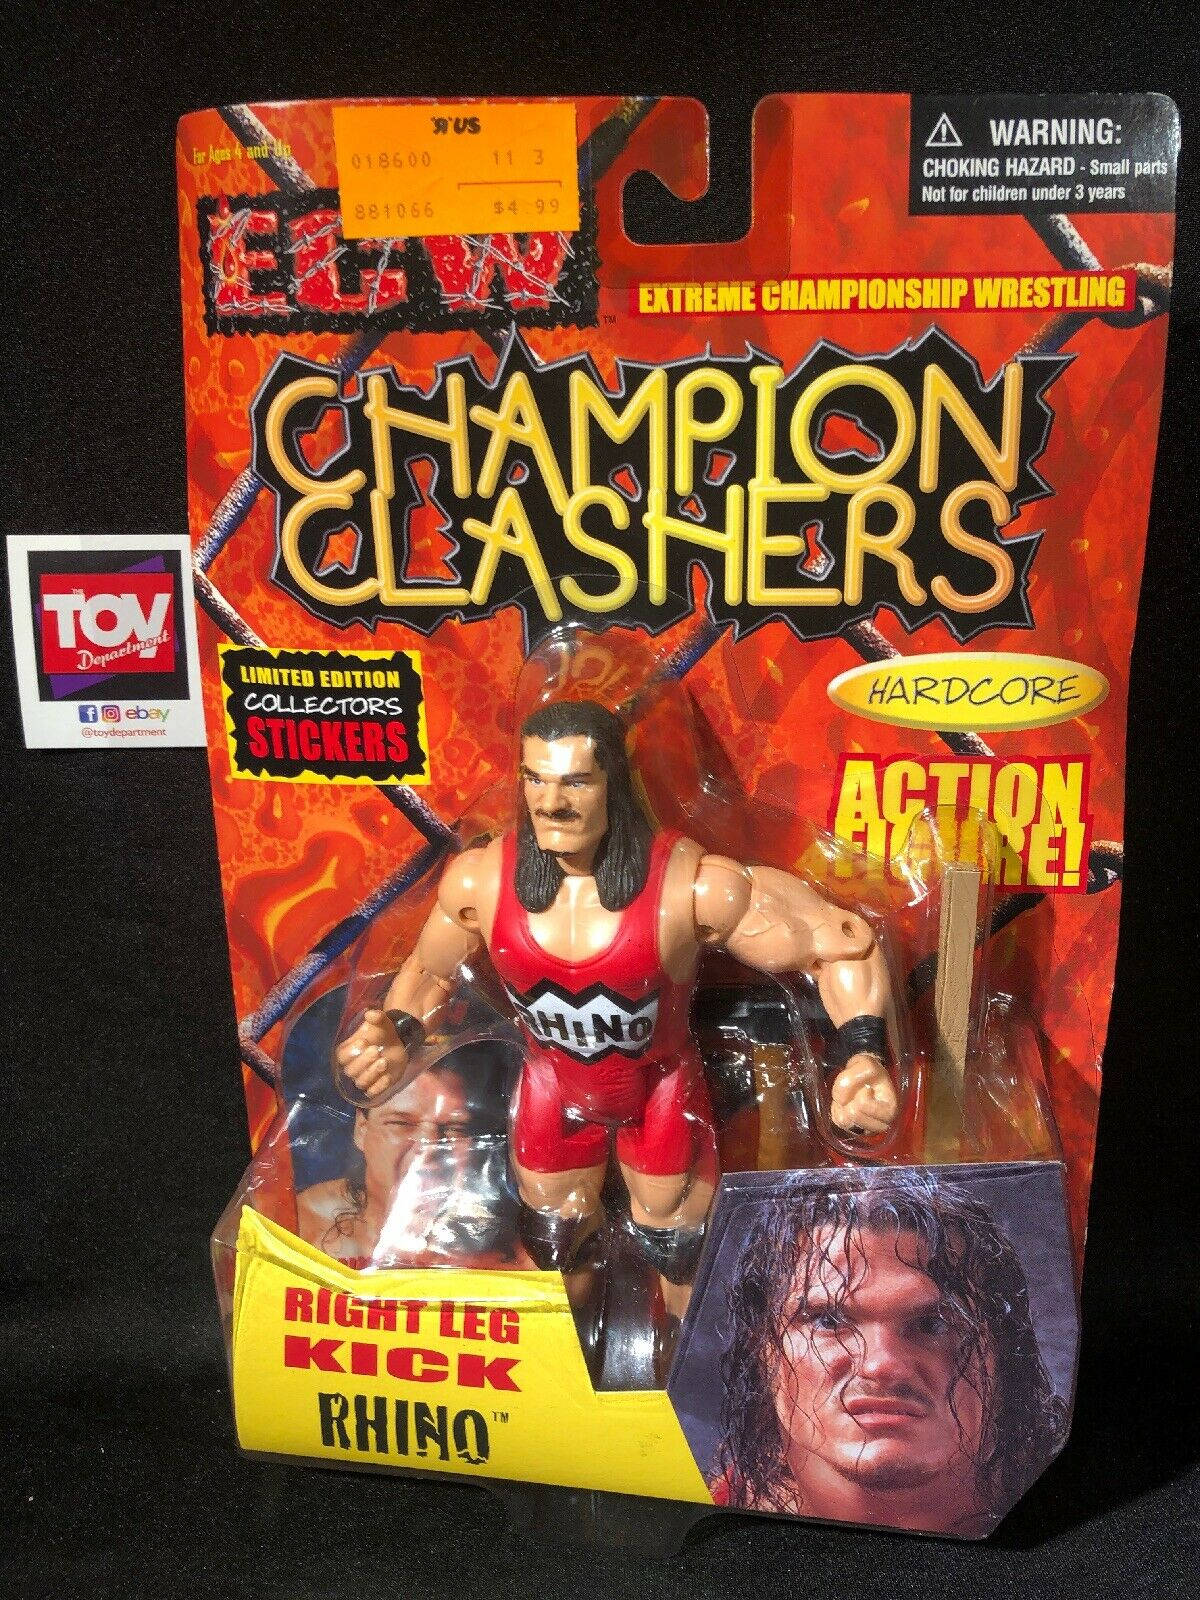 OSFTM Toymakers ECW Champion Clashers Right Leg Kick RHINO figure MOC wrestling